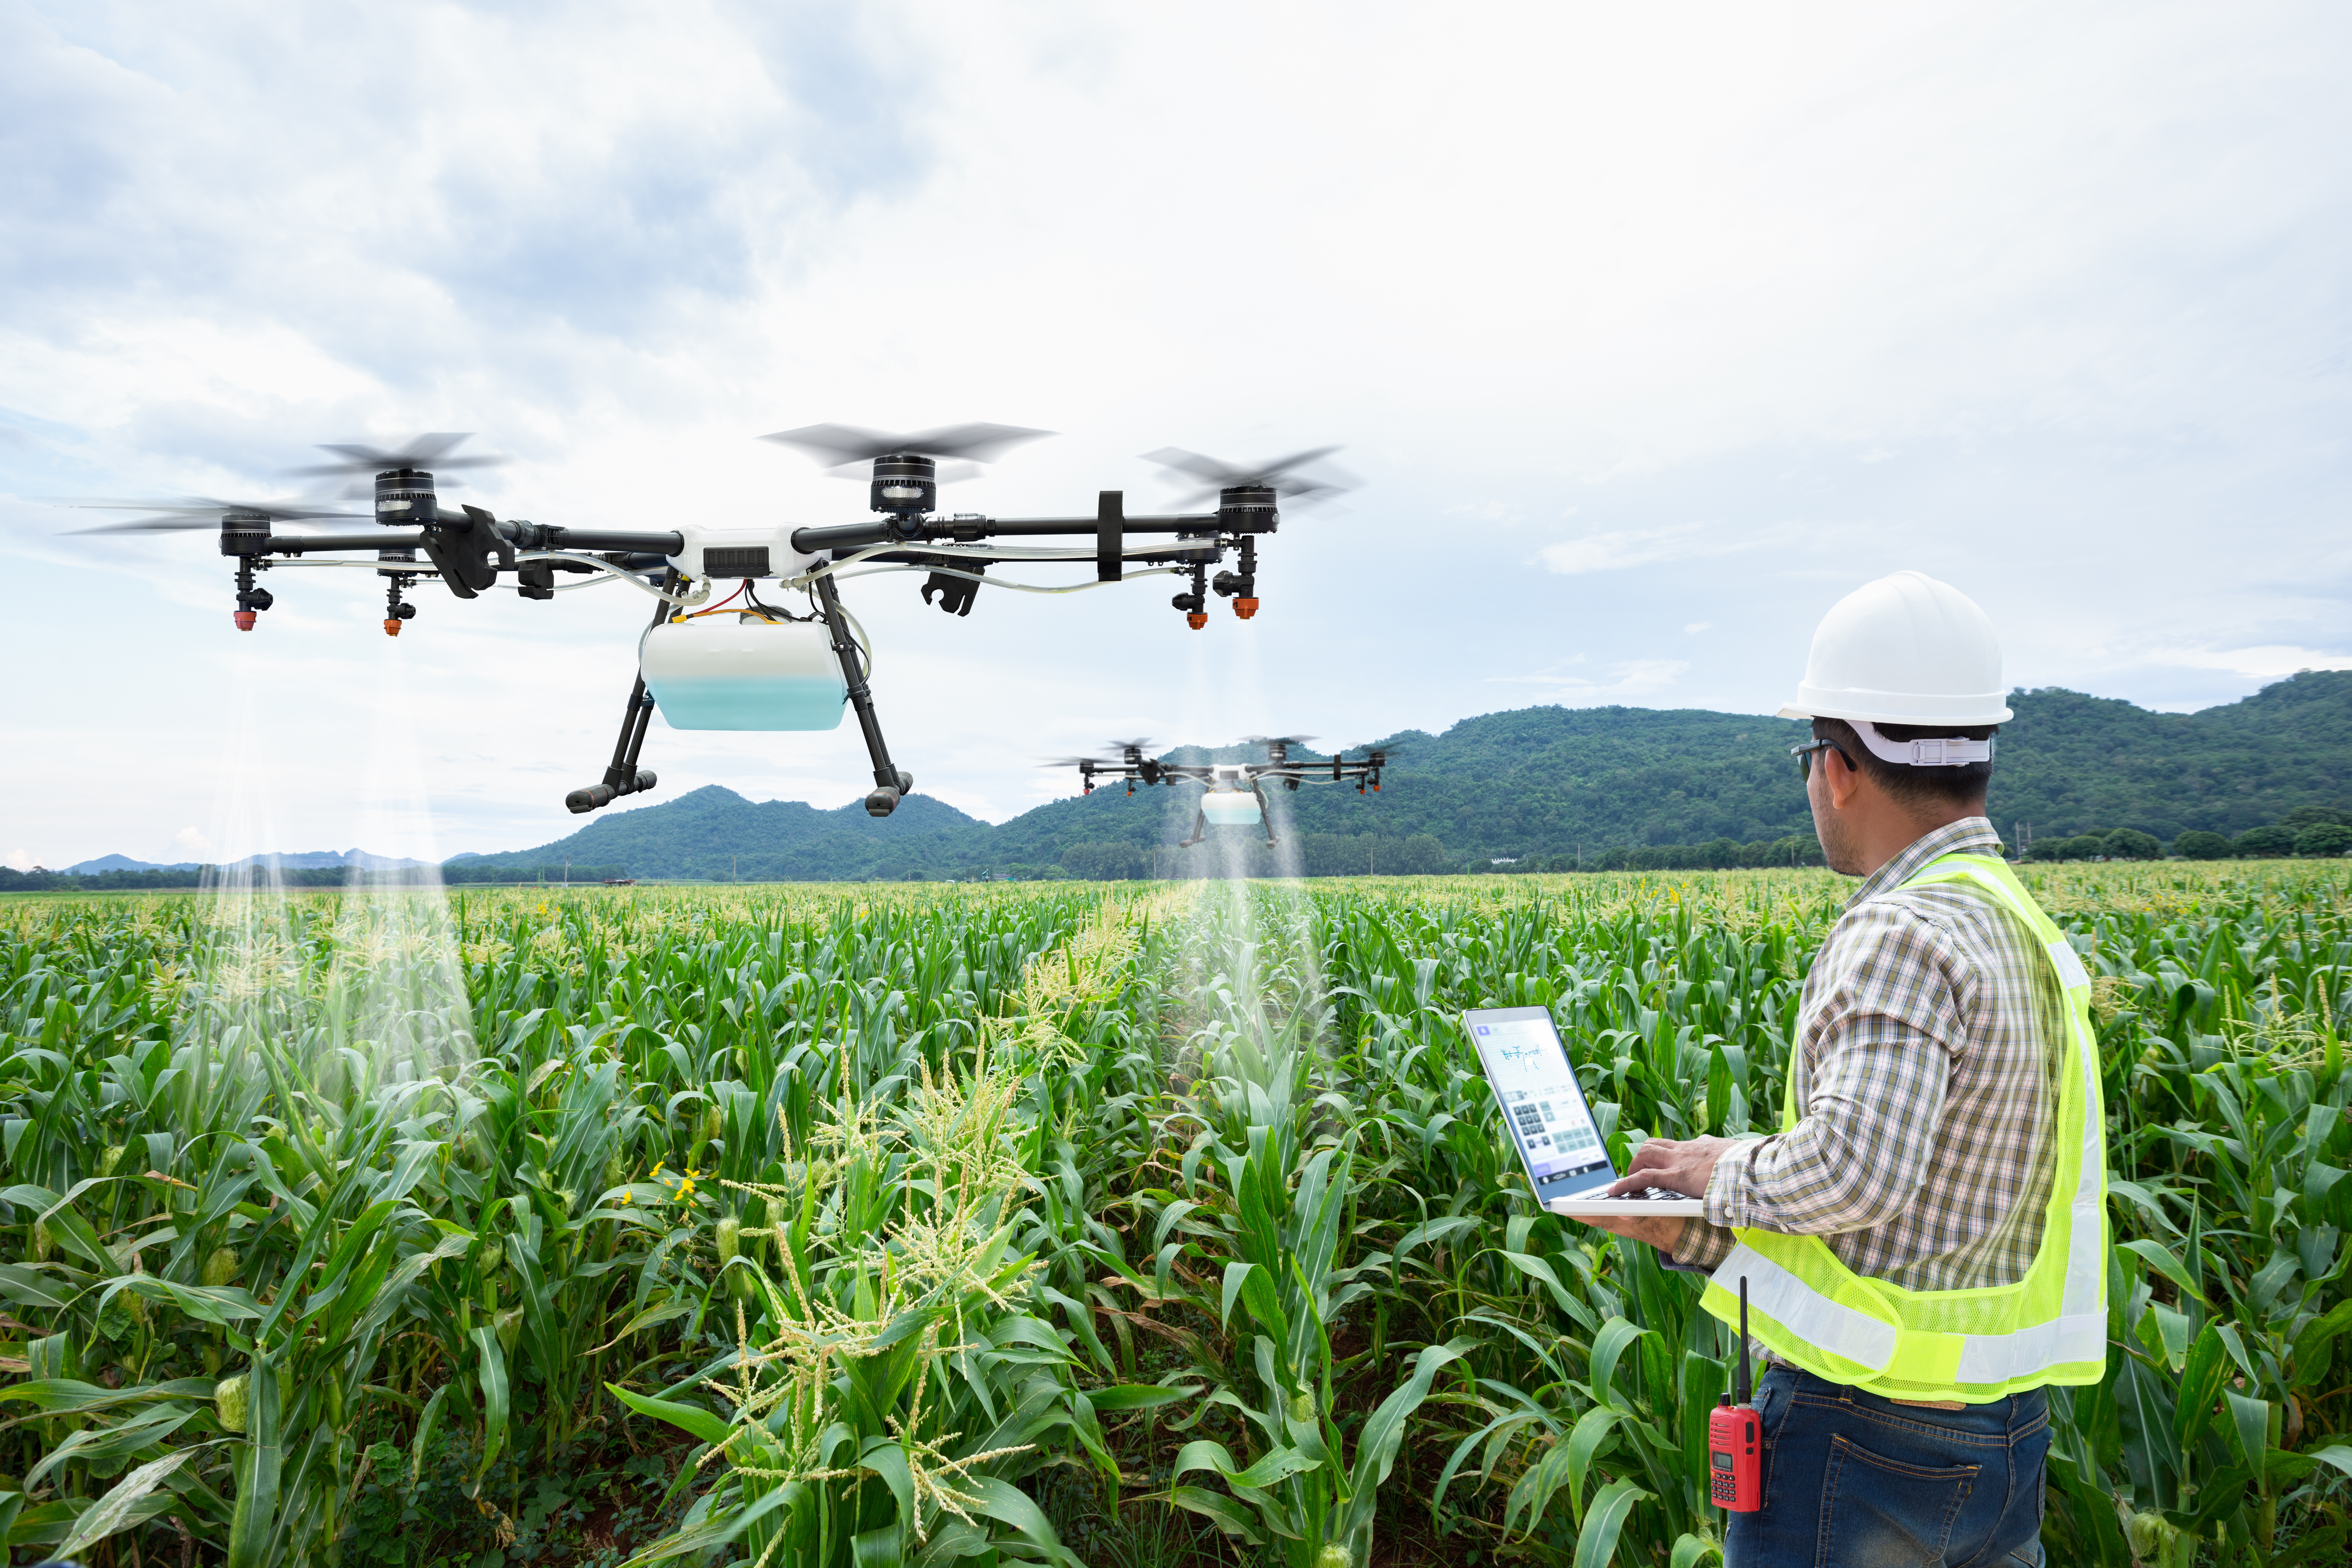 Robots in Agriculture: Council for Agricultural Science and Technology Outlines Opportunities, Challenges